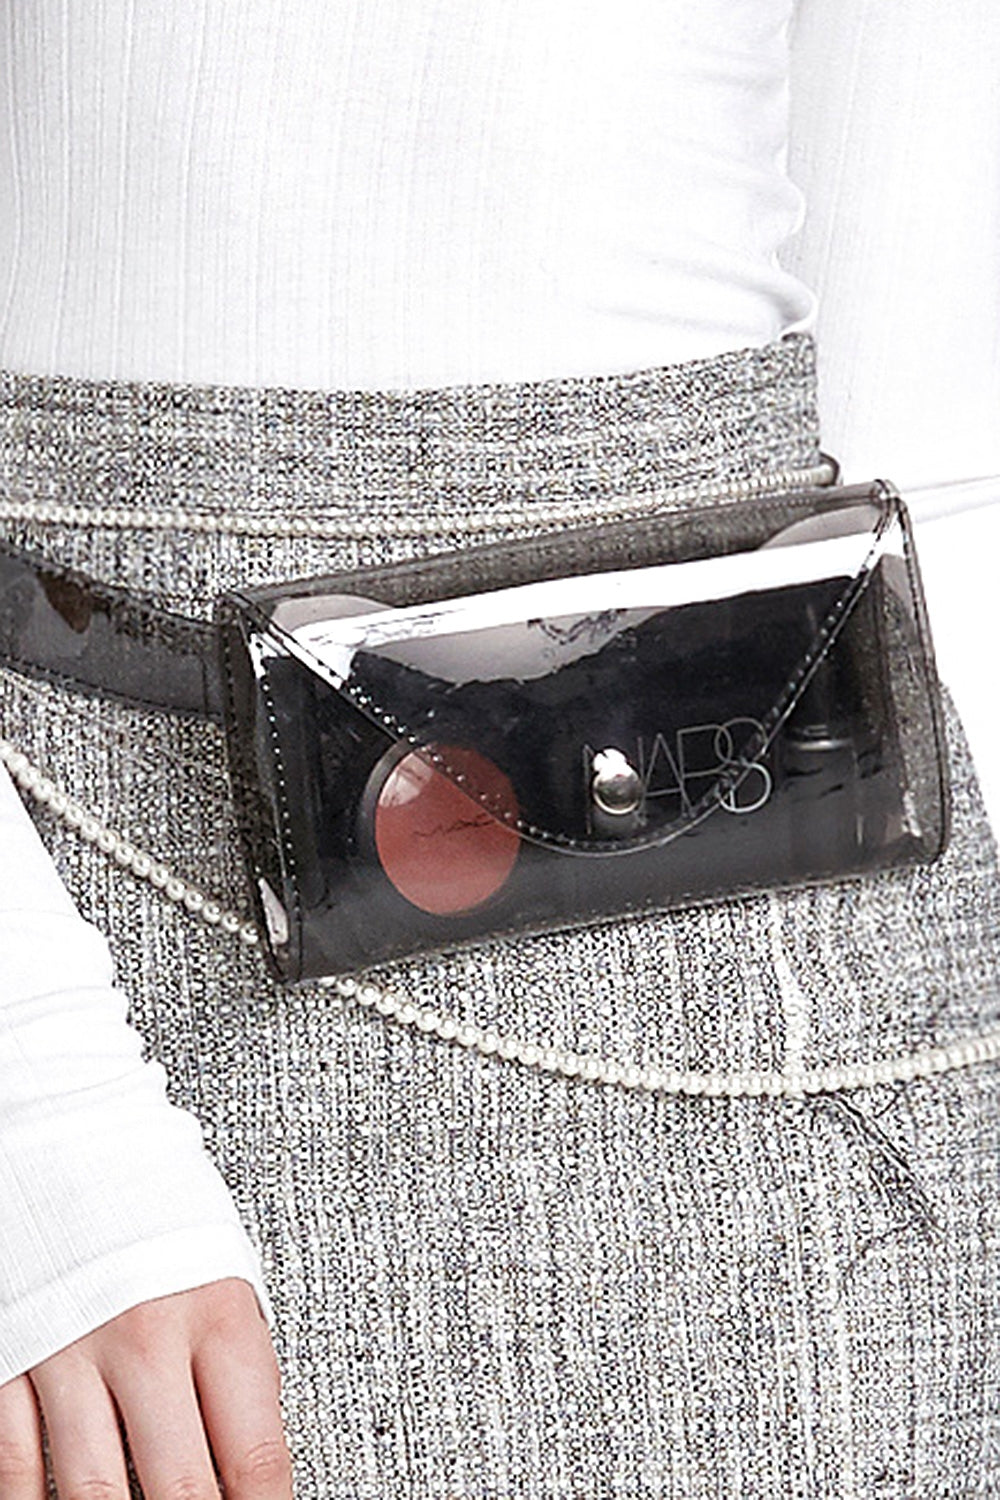 Vinyl Film Belt Bag